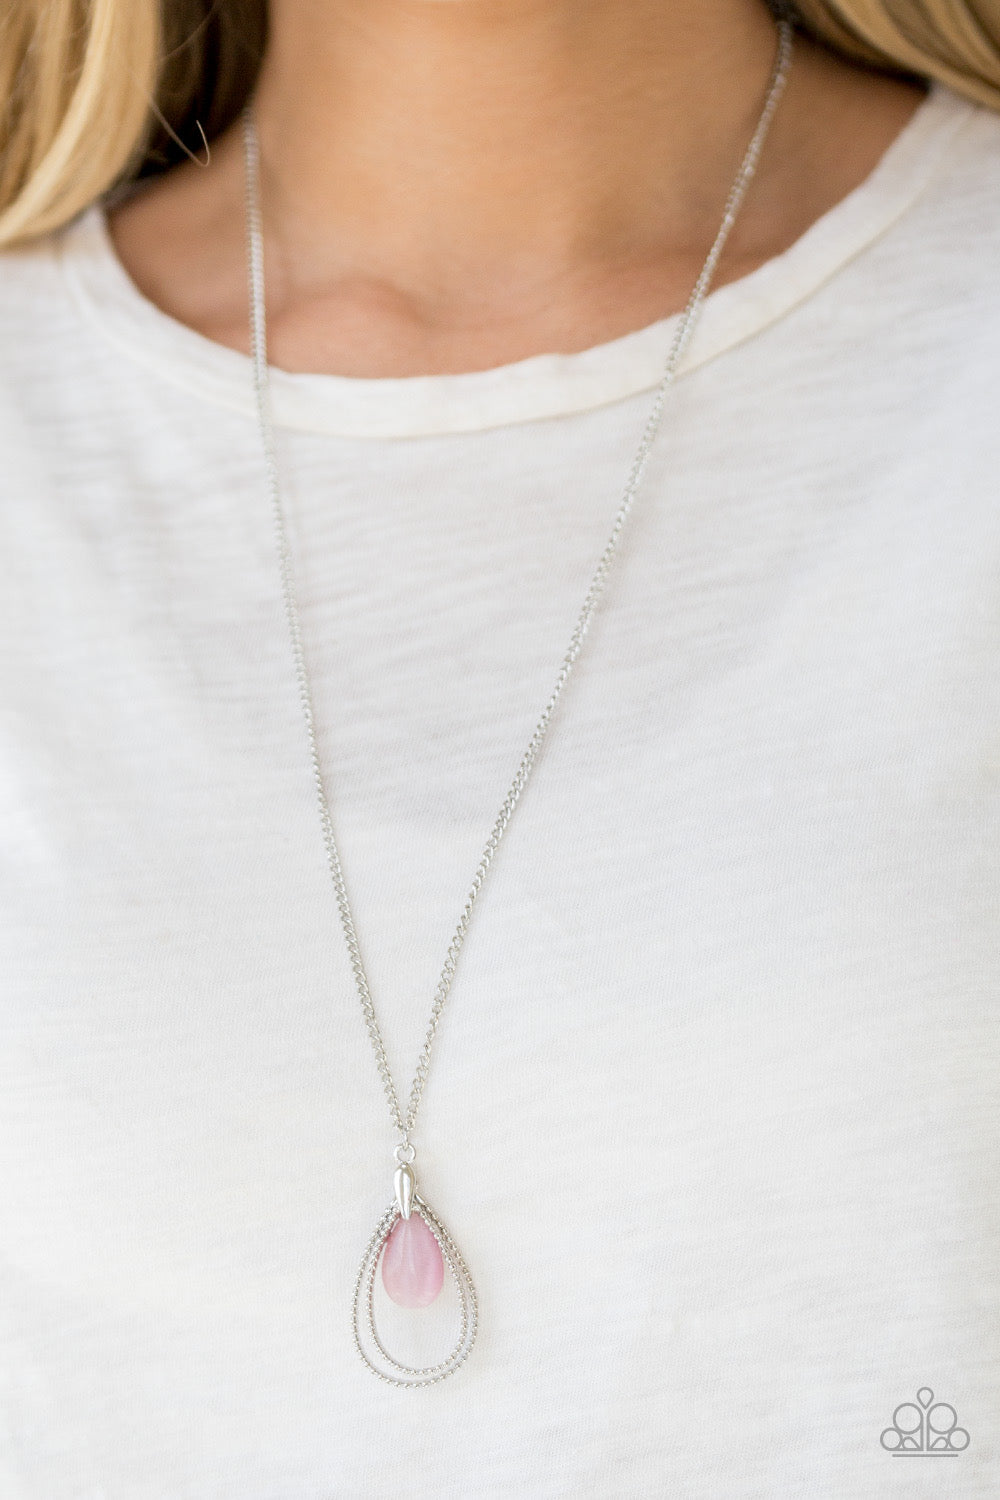 Paparazzi Teardrop Tranquility - Pink Necklace